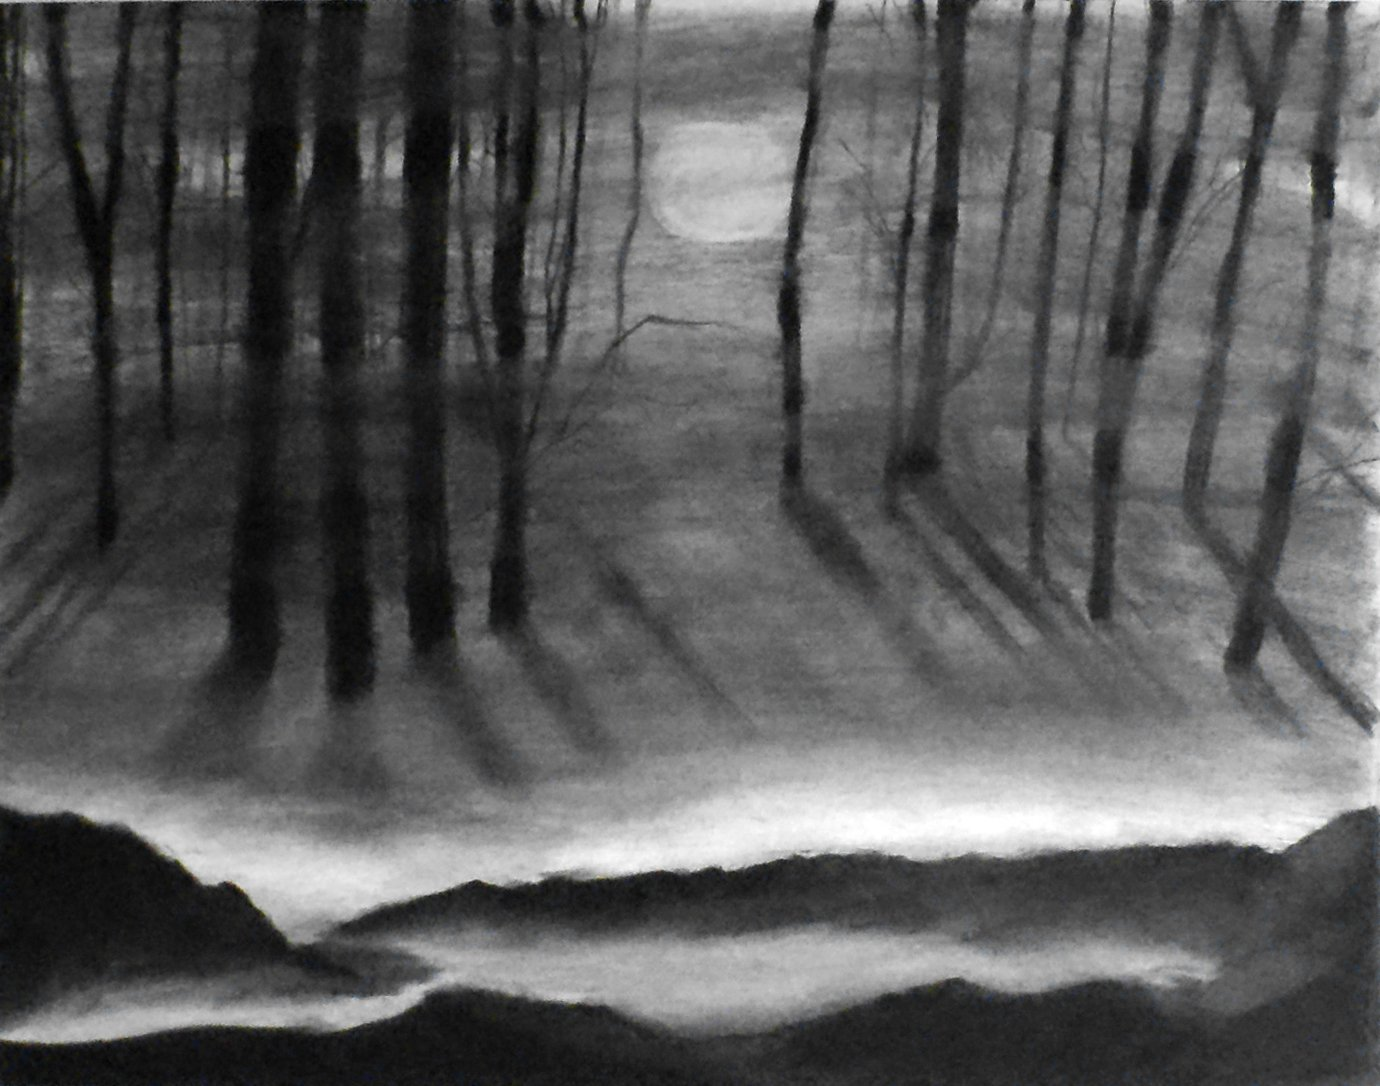 Amazon com 1 11x14 through the fog charcoal drawing original